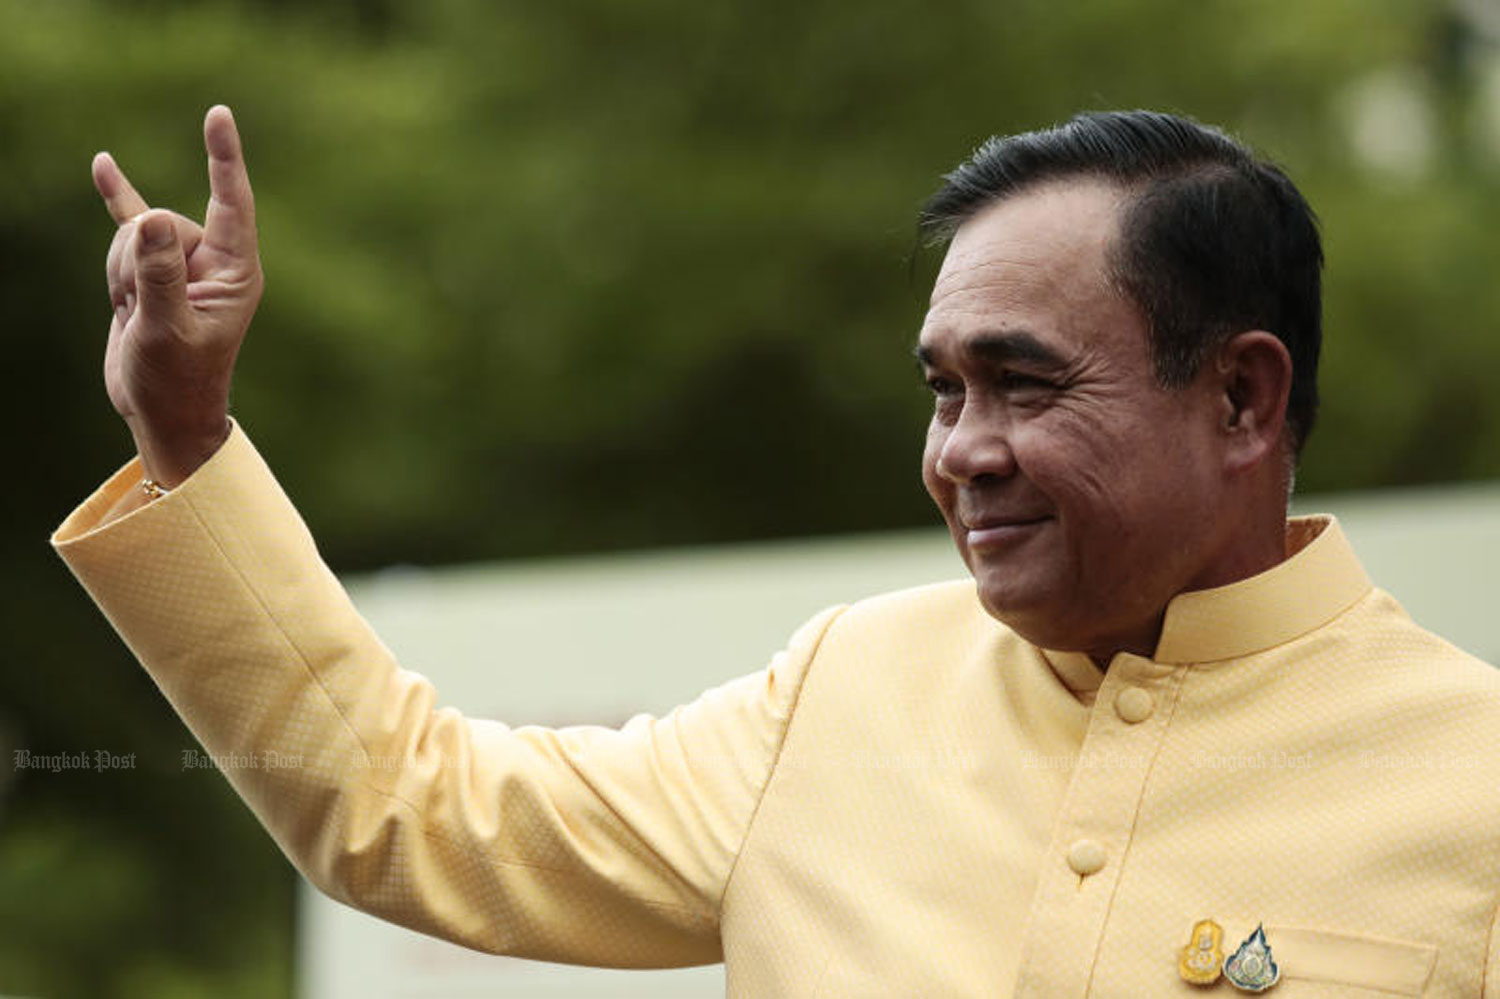 Prime Minister Prayut Chan-o-cha makes the gesture for